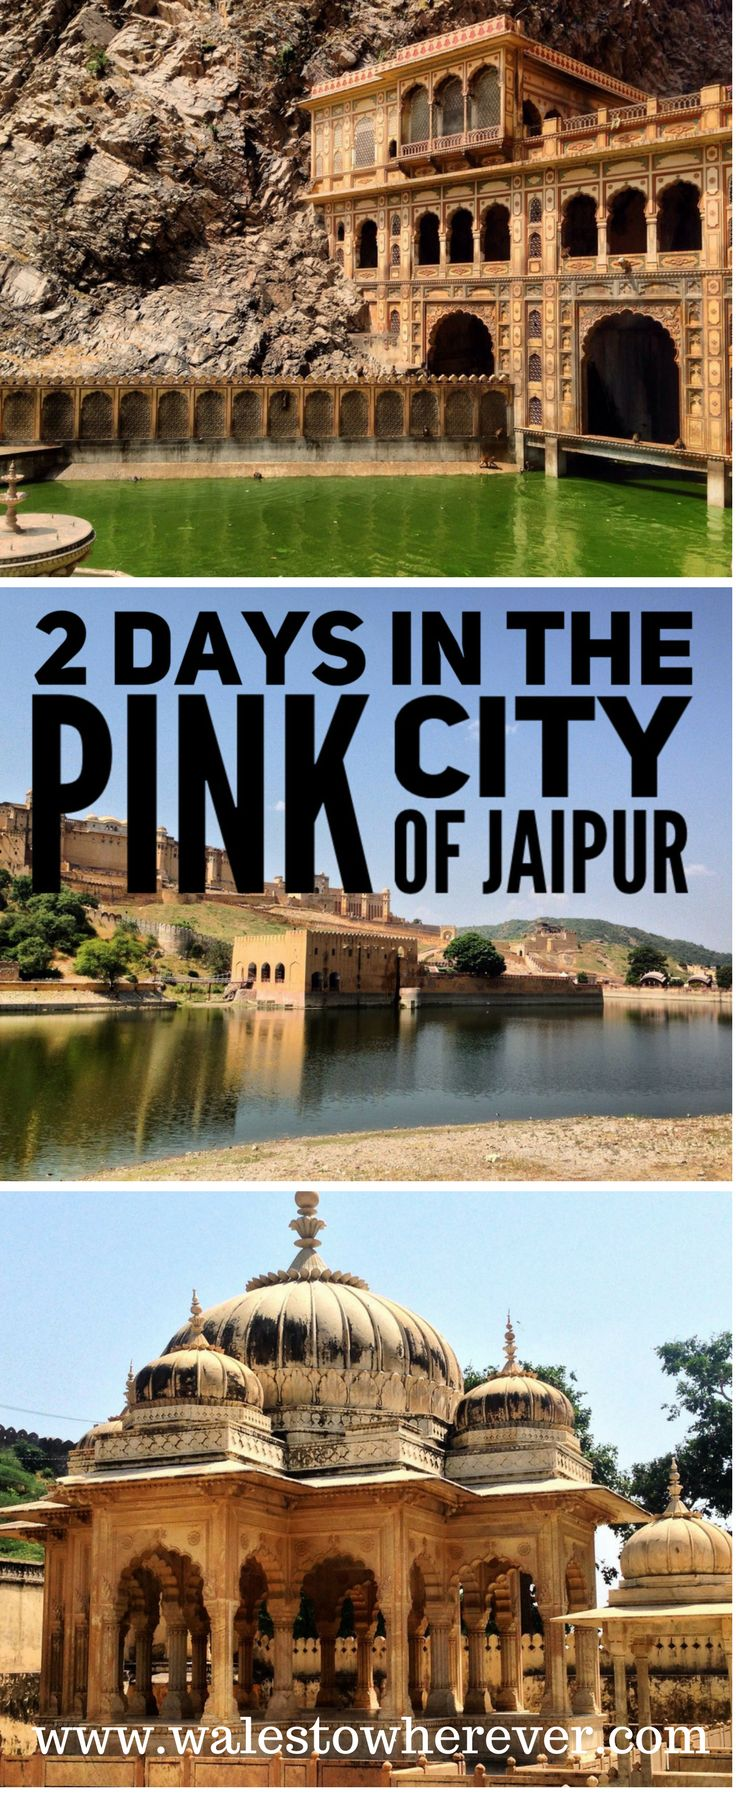 2 Days in the Pink City of Jaipur, India - What to do and see in 2 days in Jaipur, Rajasthan. Featuring Galtaji Monkey Temple, Amer Fort and Royal Gaitor!